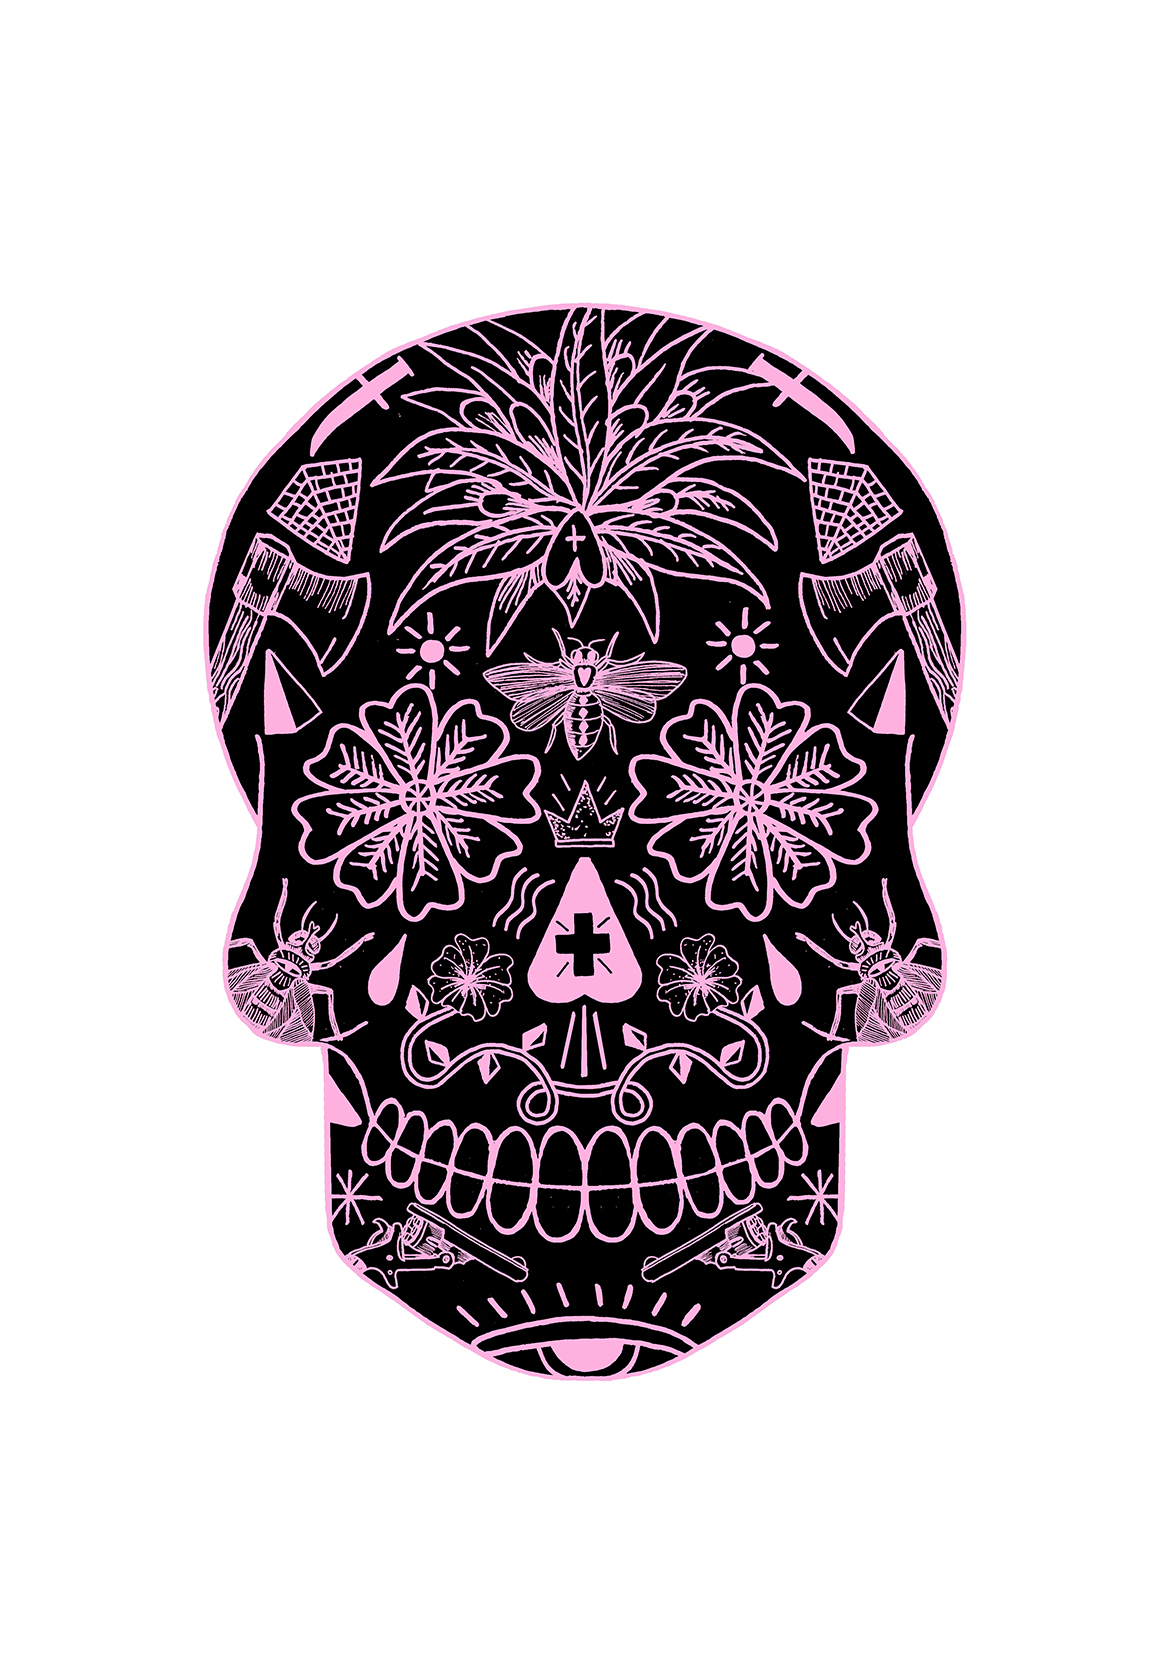 FINAL SKULL_pink and black